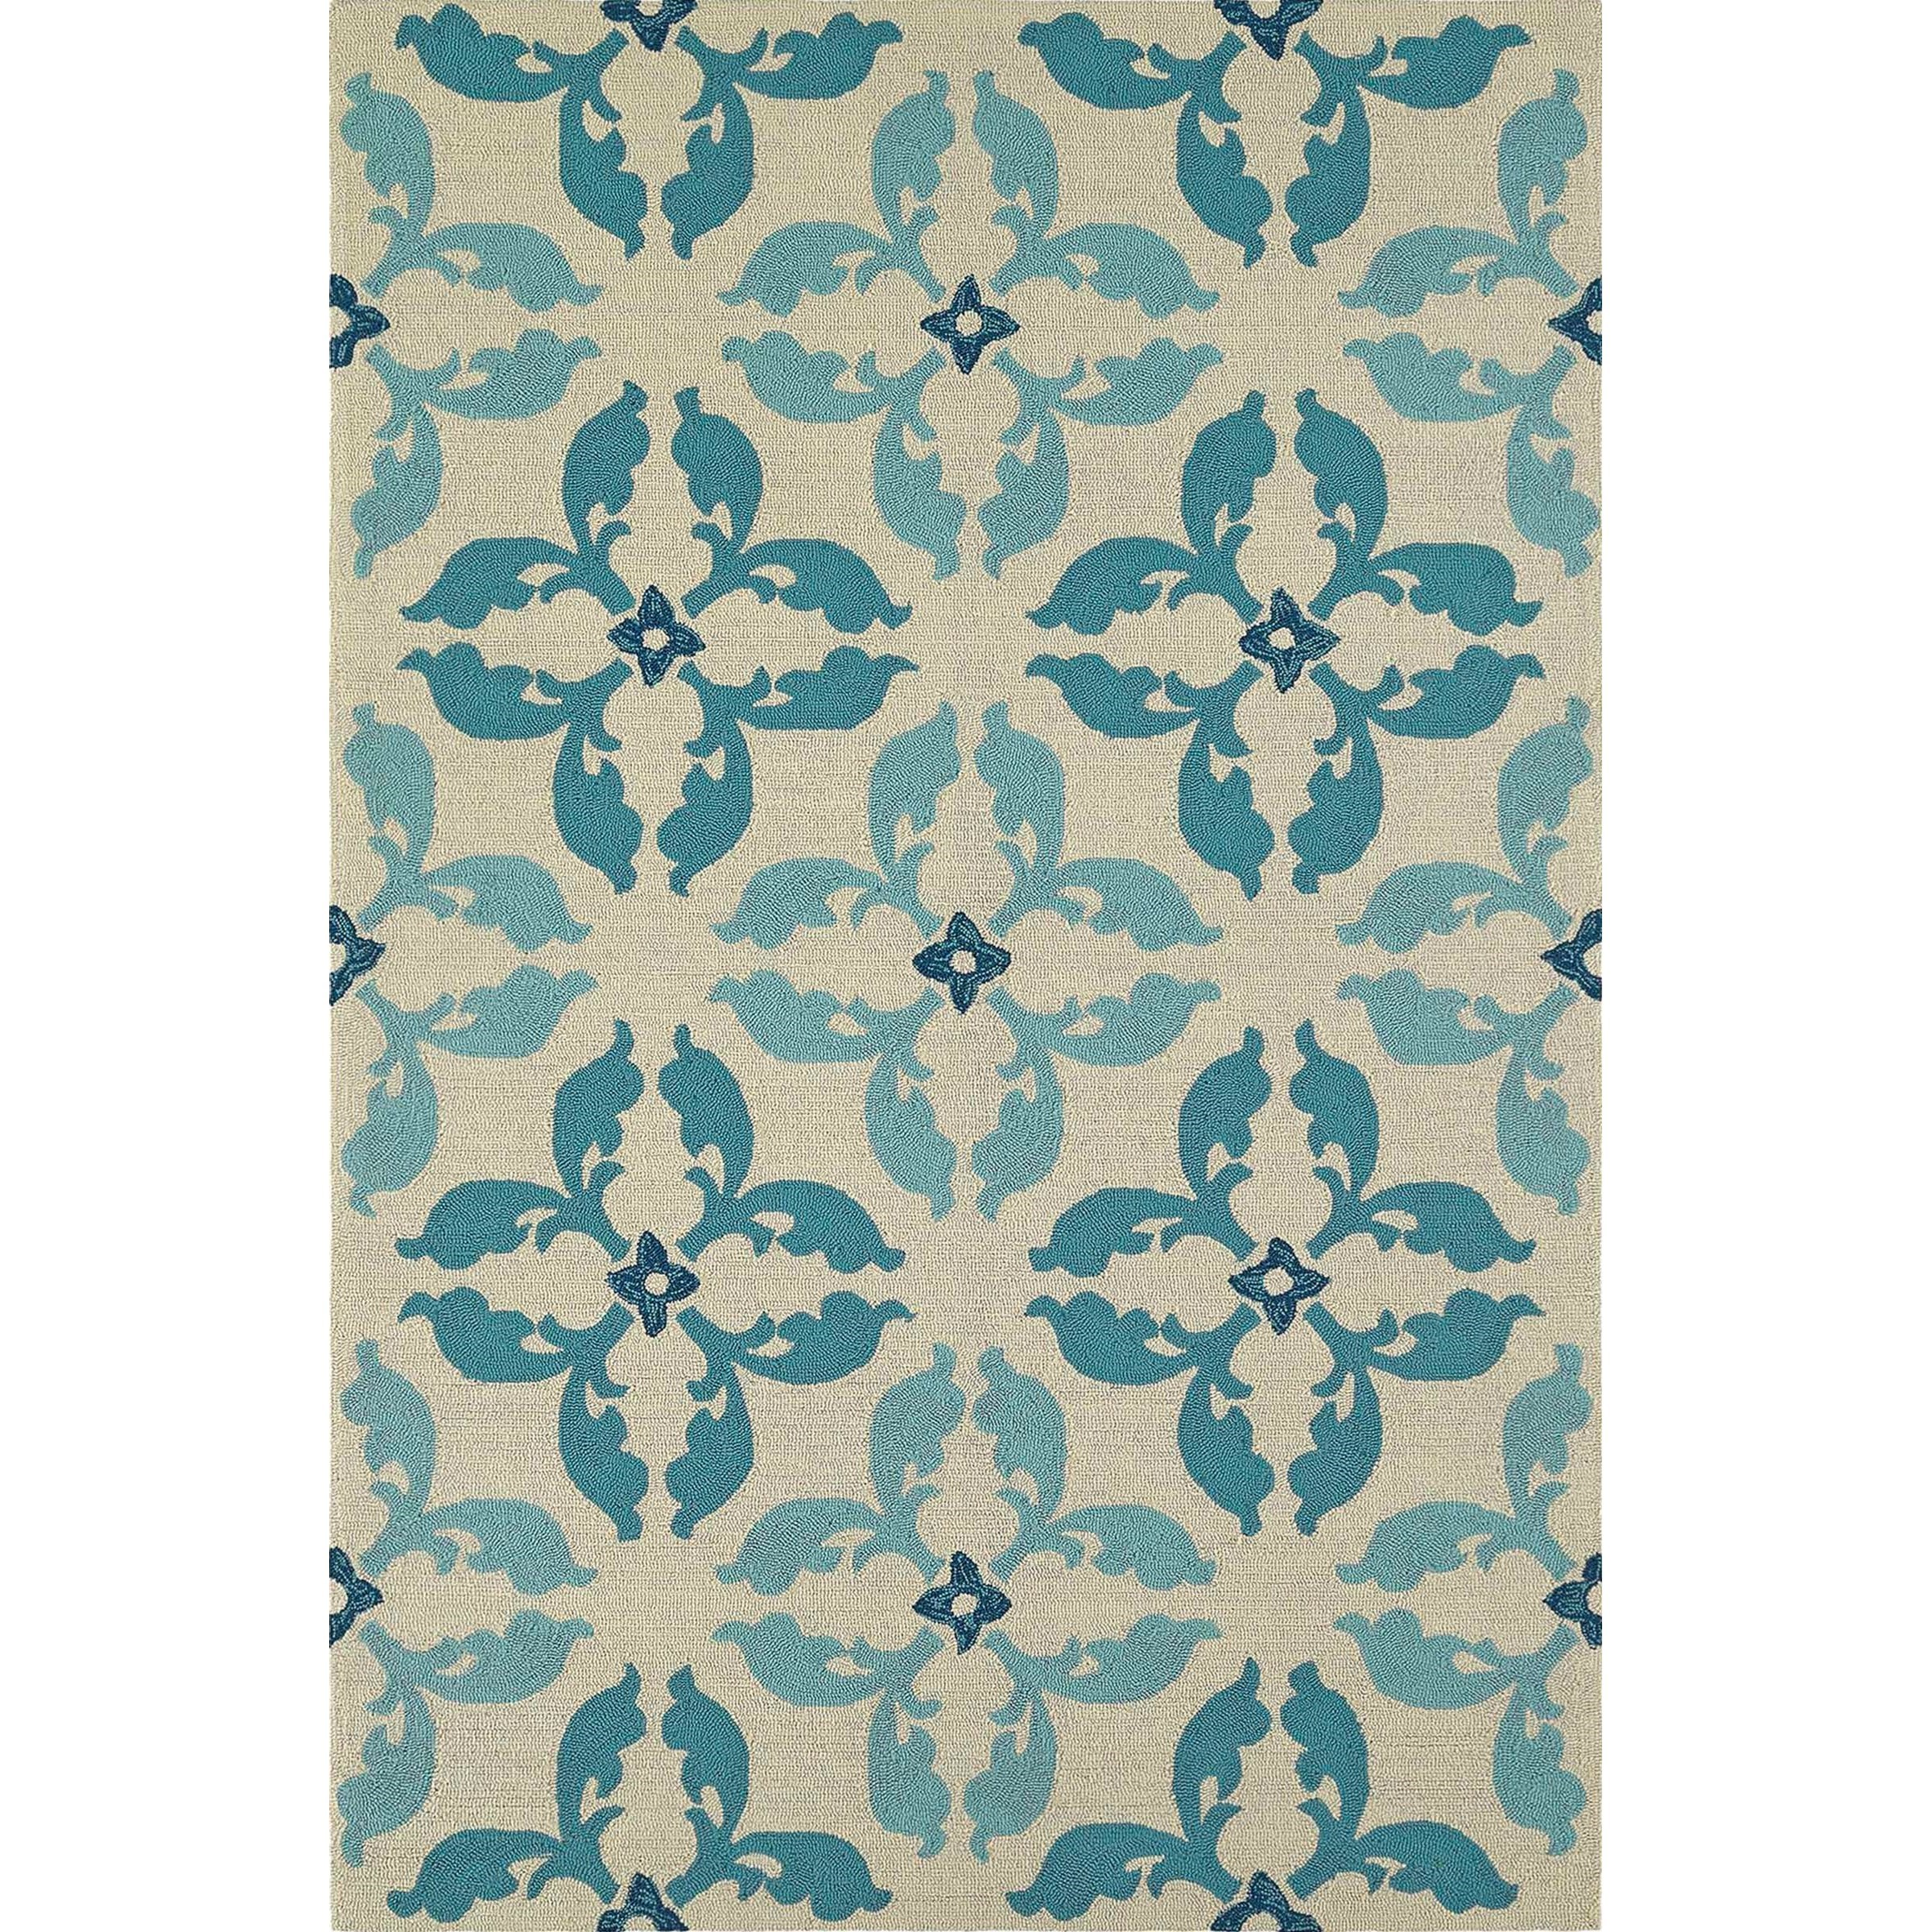 Dalyn Cabana Peacock 8'X10' Rug - Item Number: CN17PC8X10